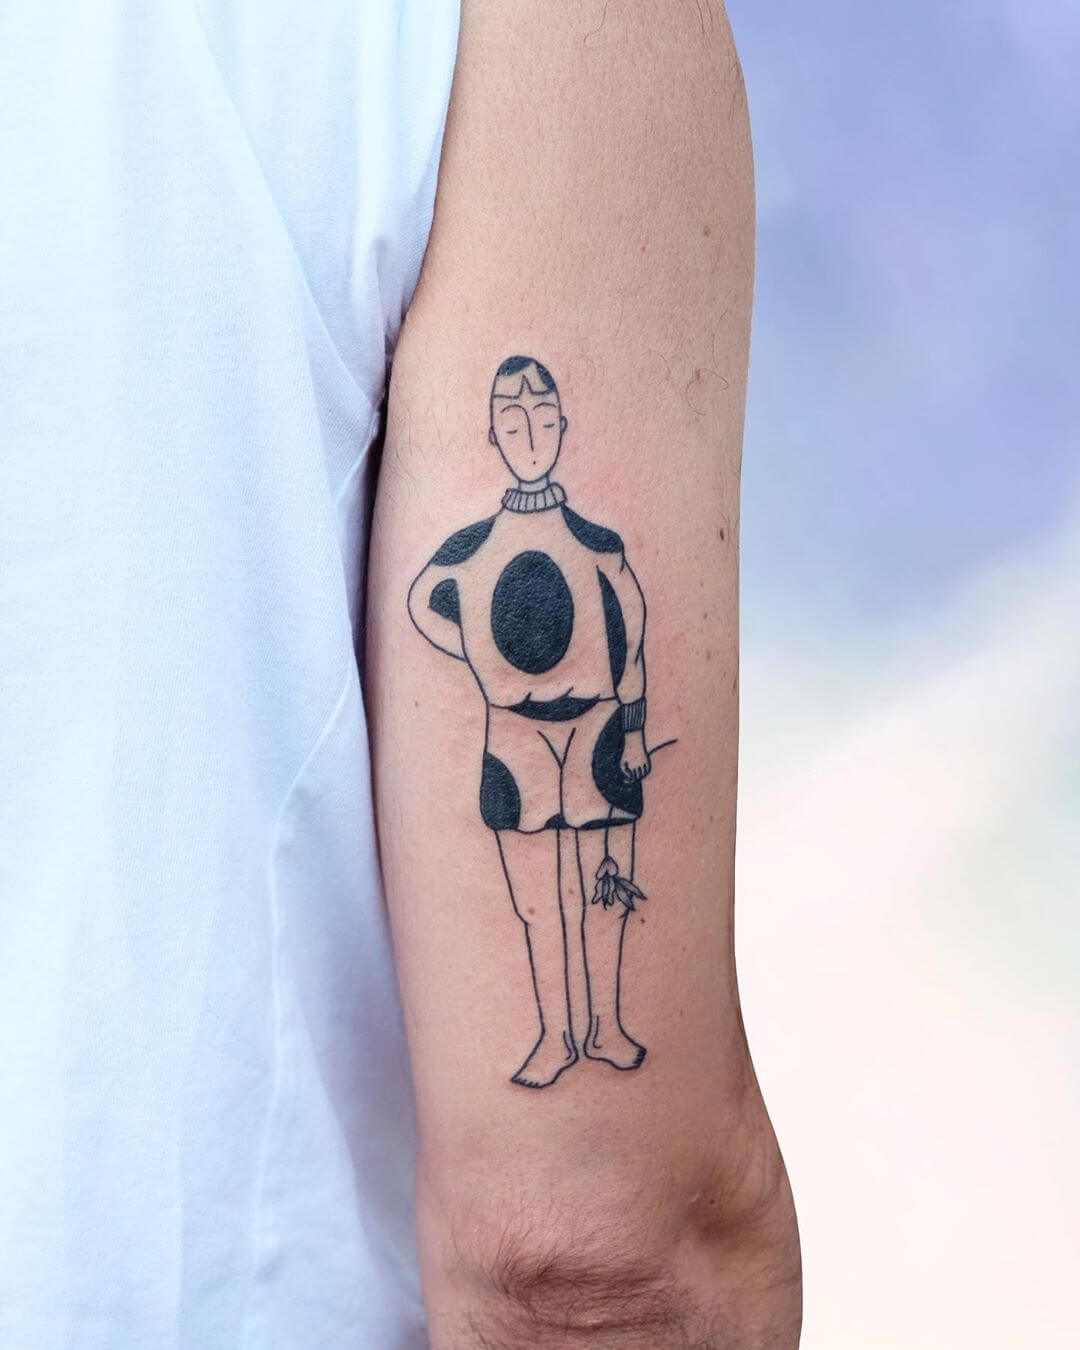 Character with dottd outfit tattoo